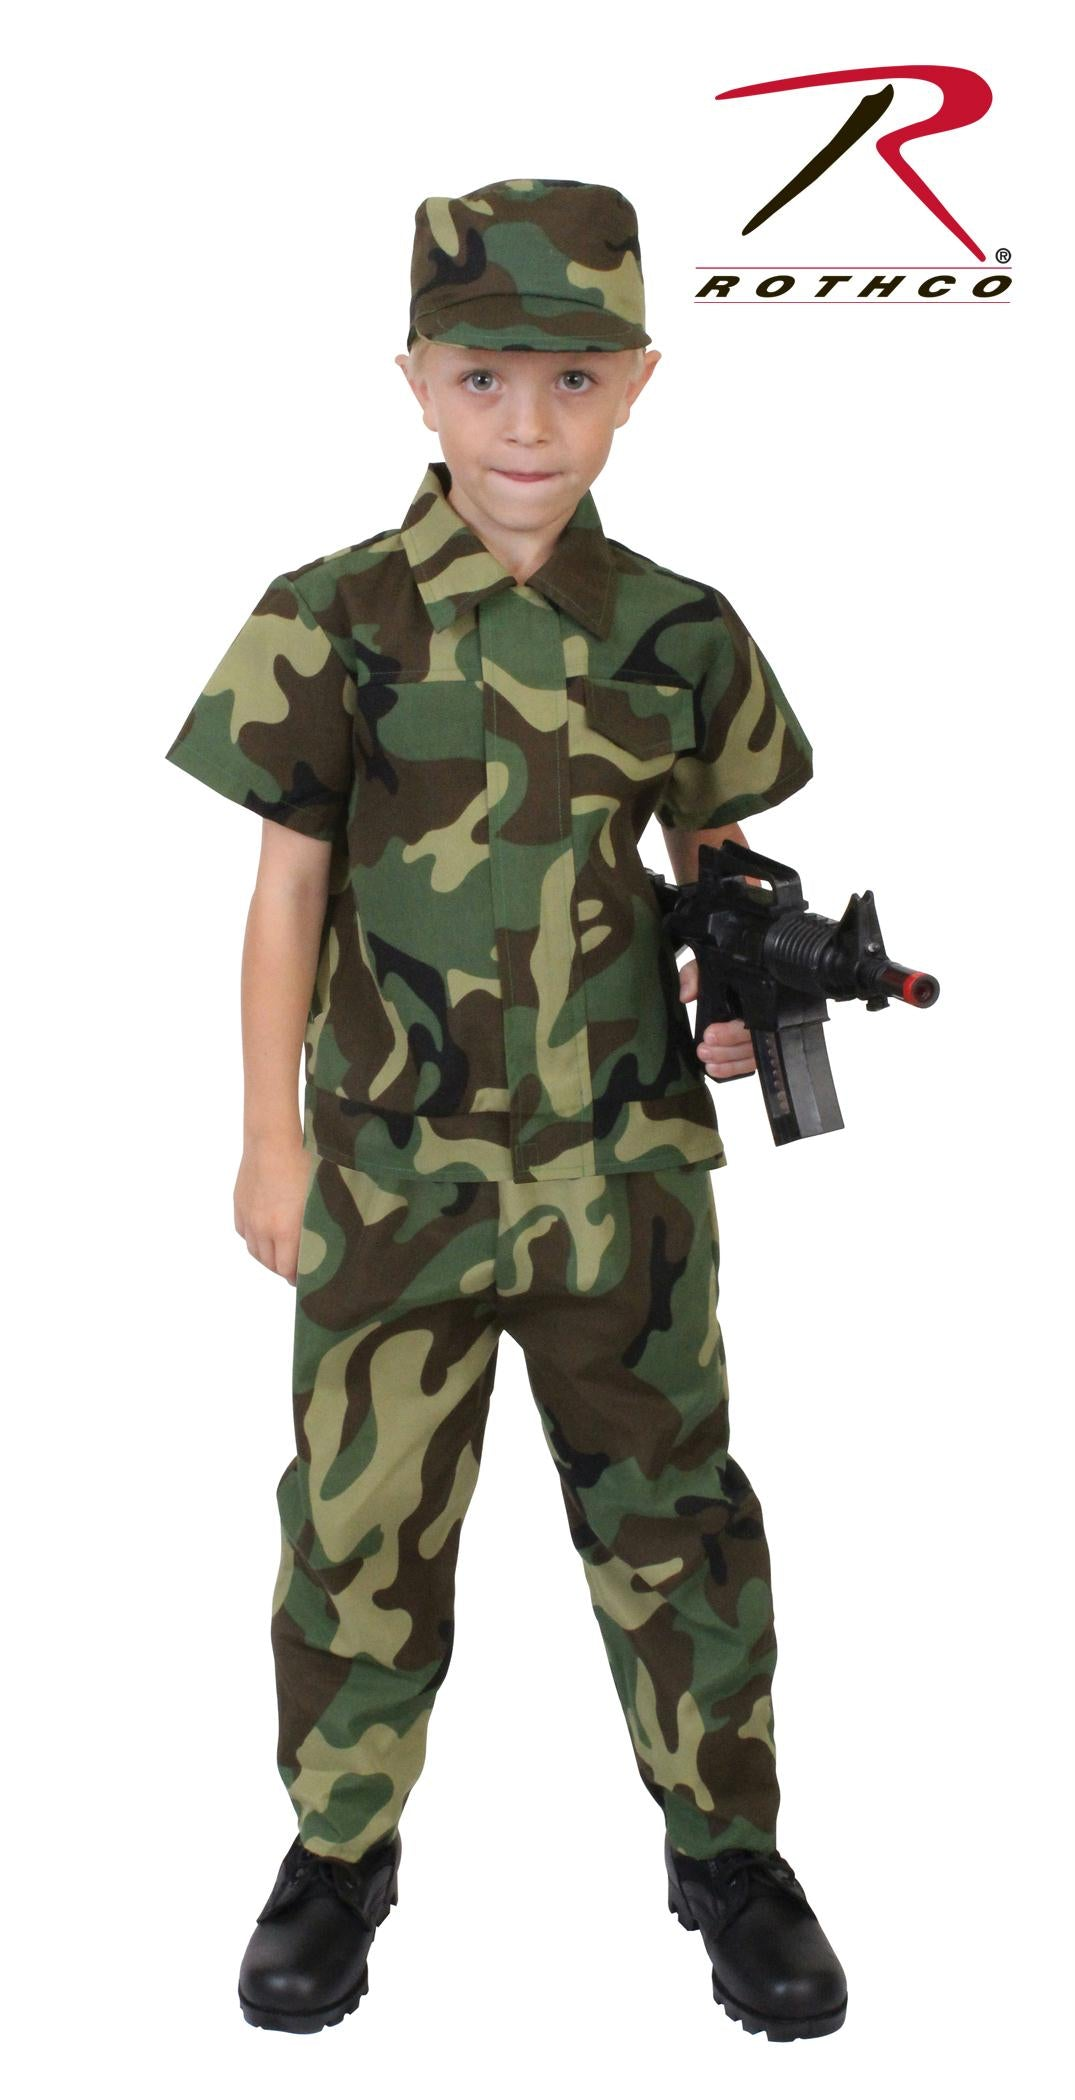 Rothco Kids Camouflage Soldier Costume - 3 - 5 Years